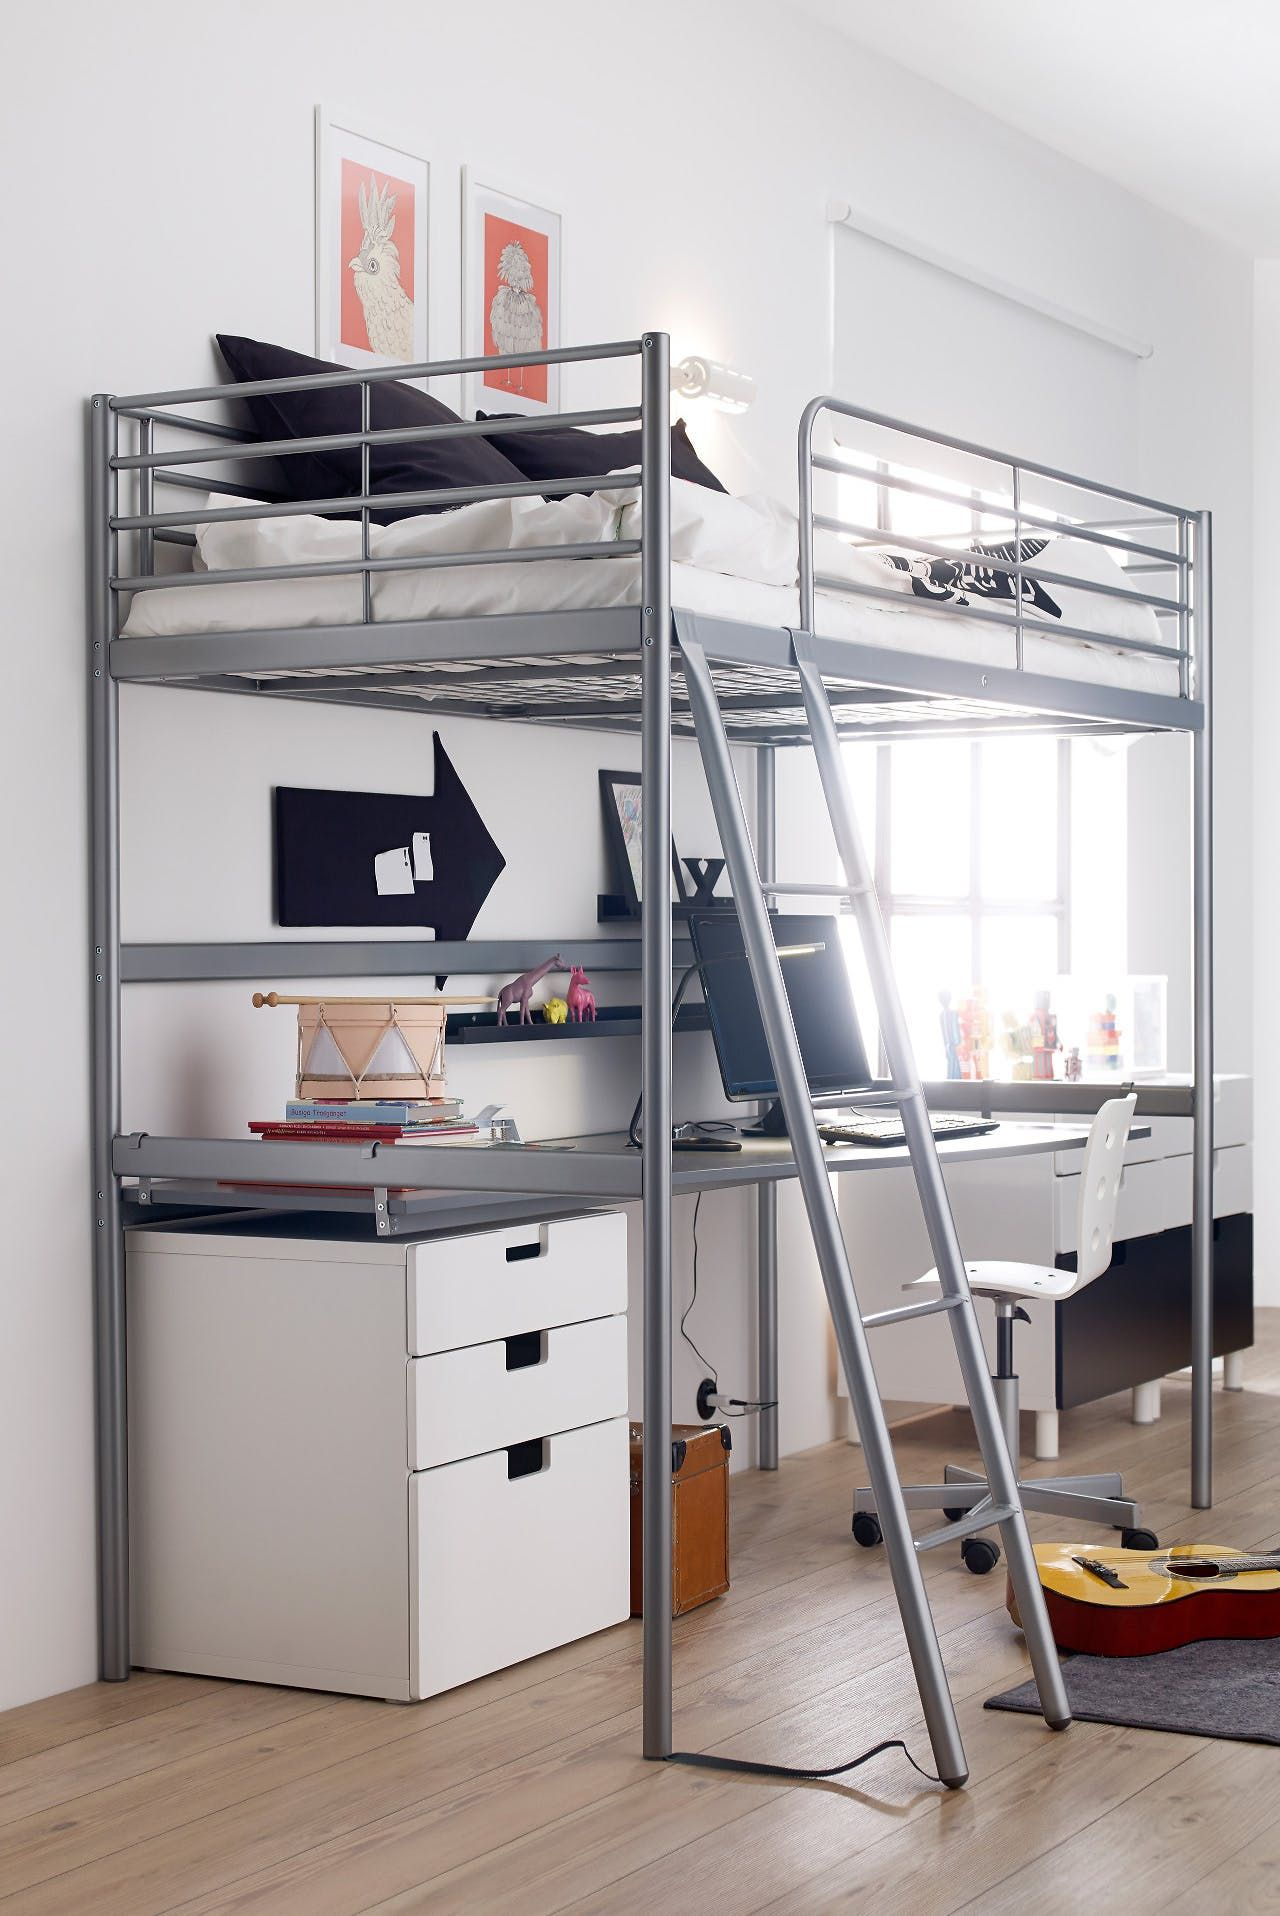 10 Full Size Modern Loft Beds For Your Tiny Apartment Loft Bed Frame Modern Loft Bed Bunk Beds With Stairs